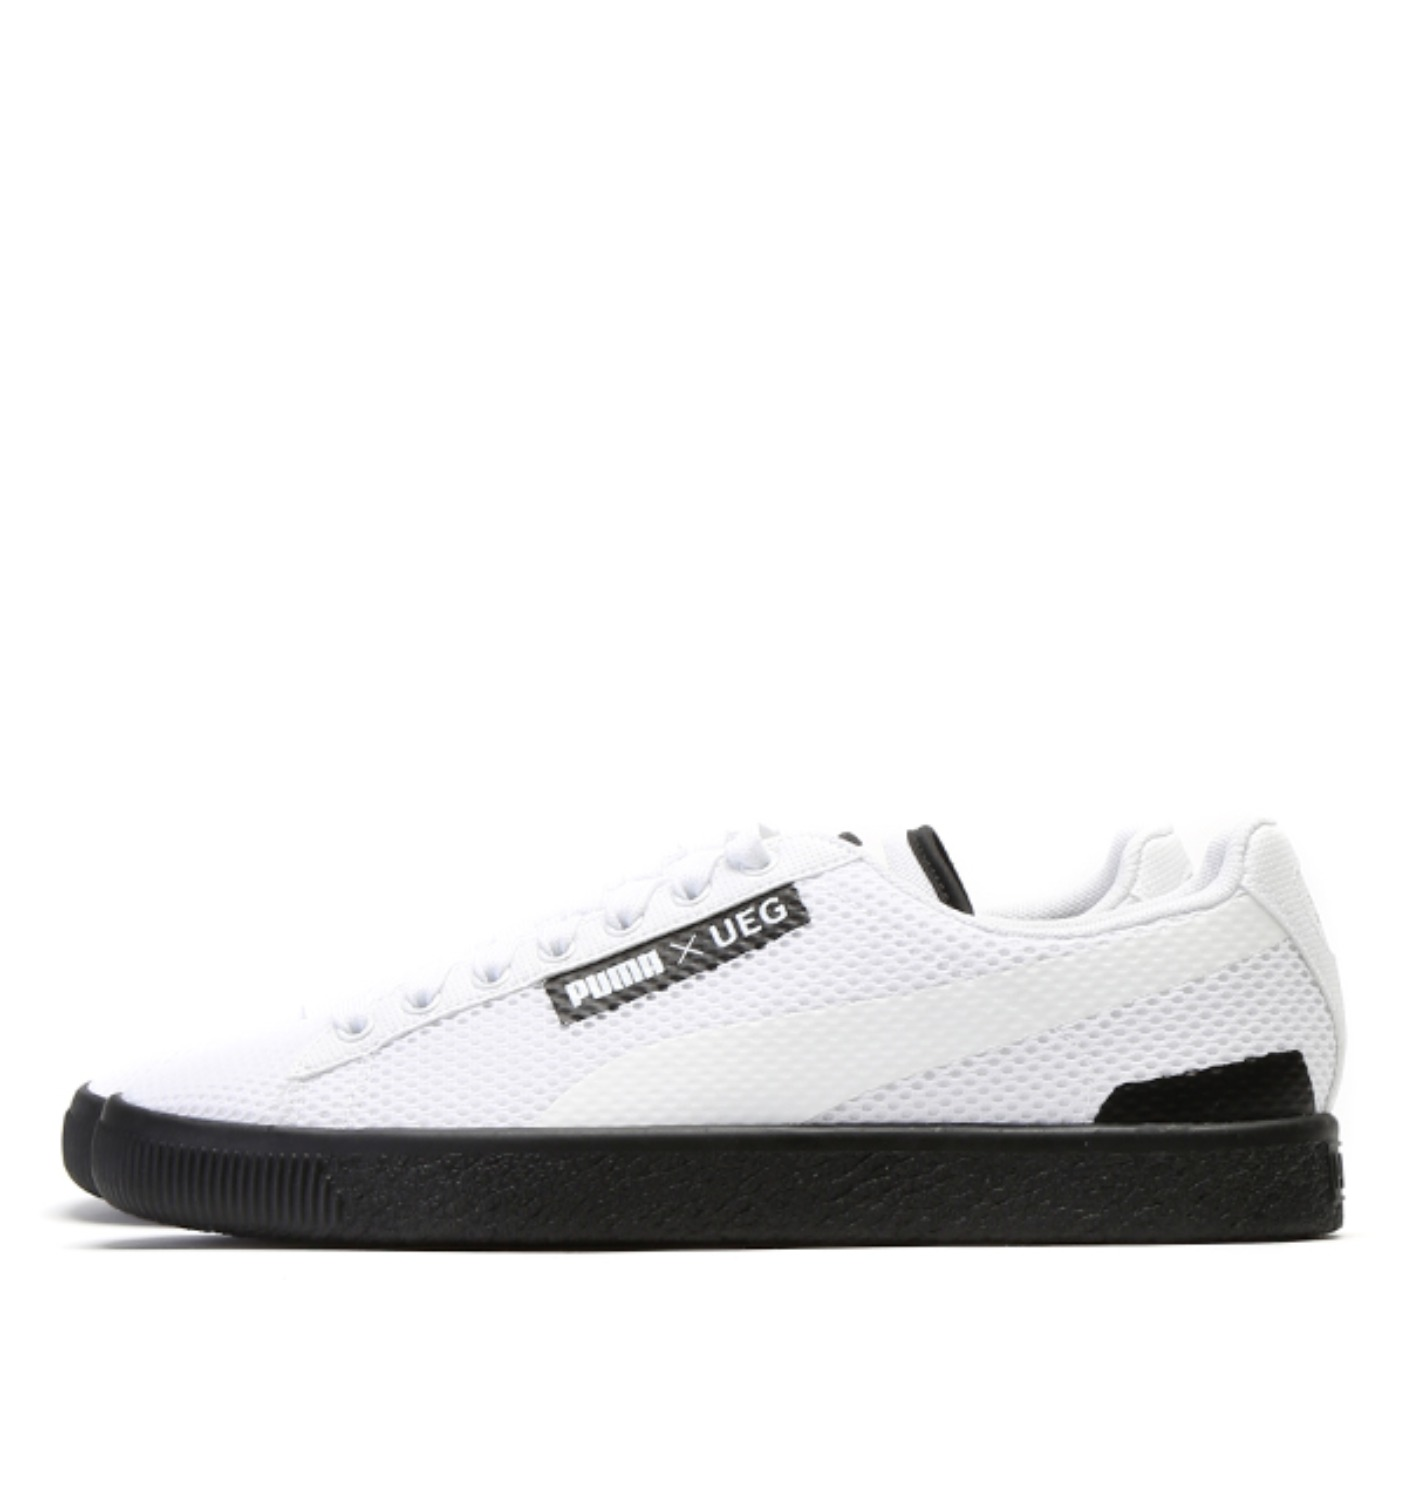 Court x UEG White/Black (361496 02)